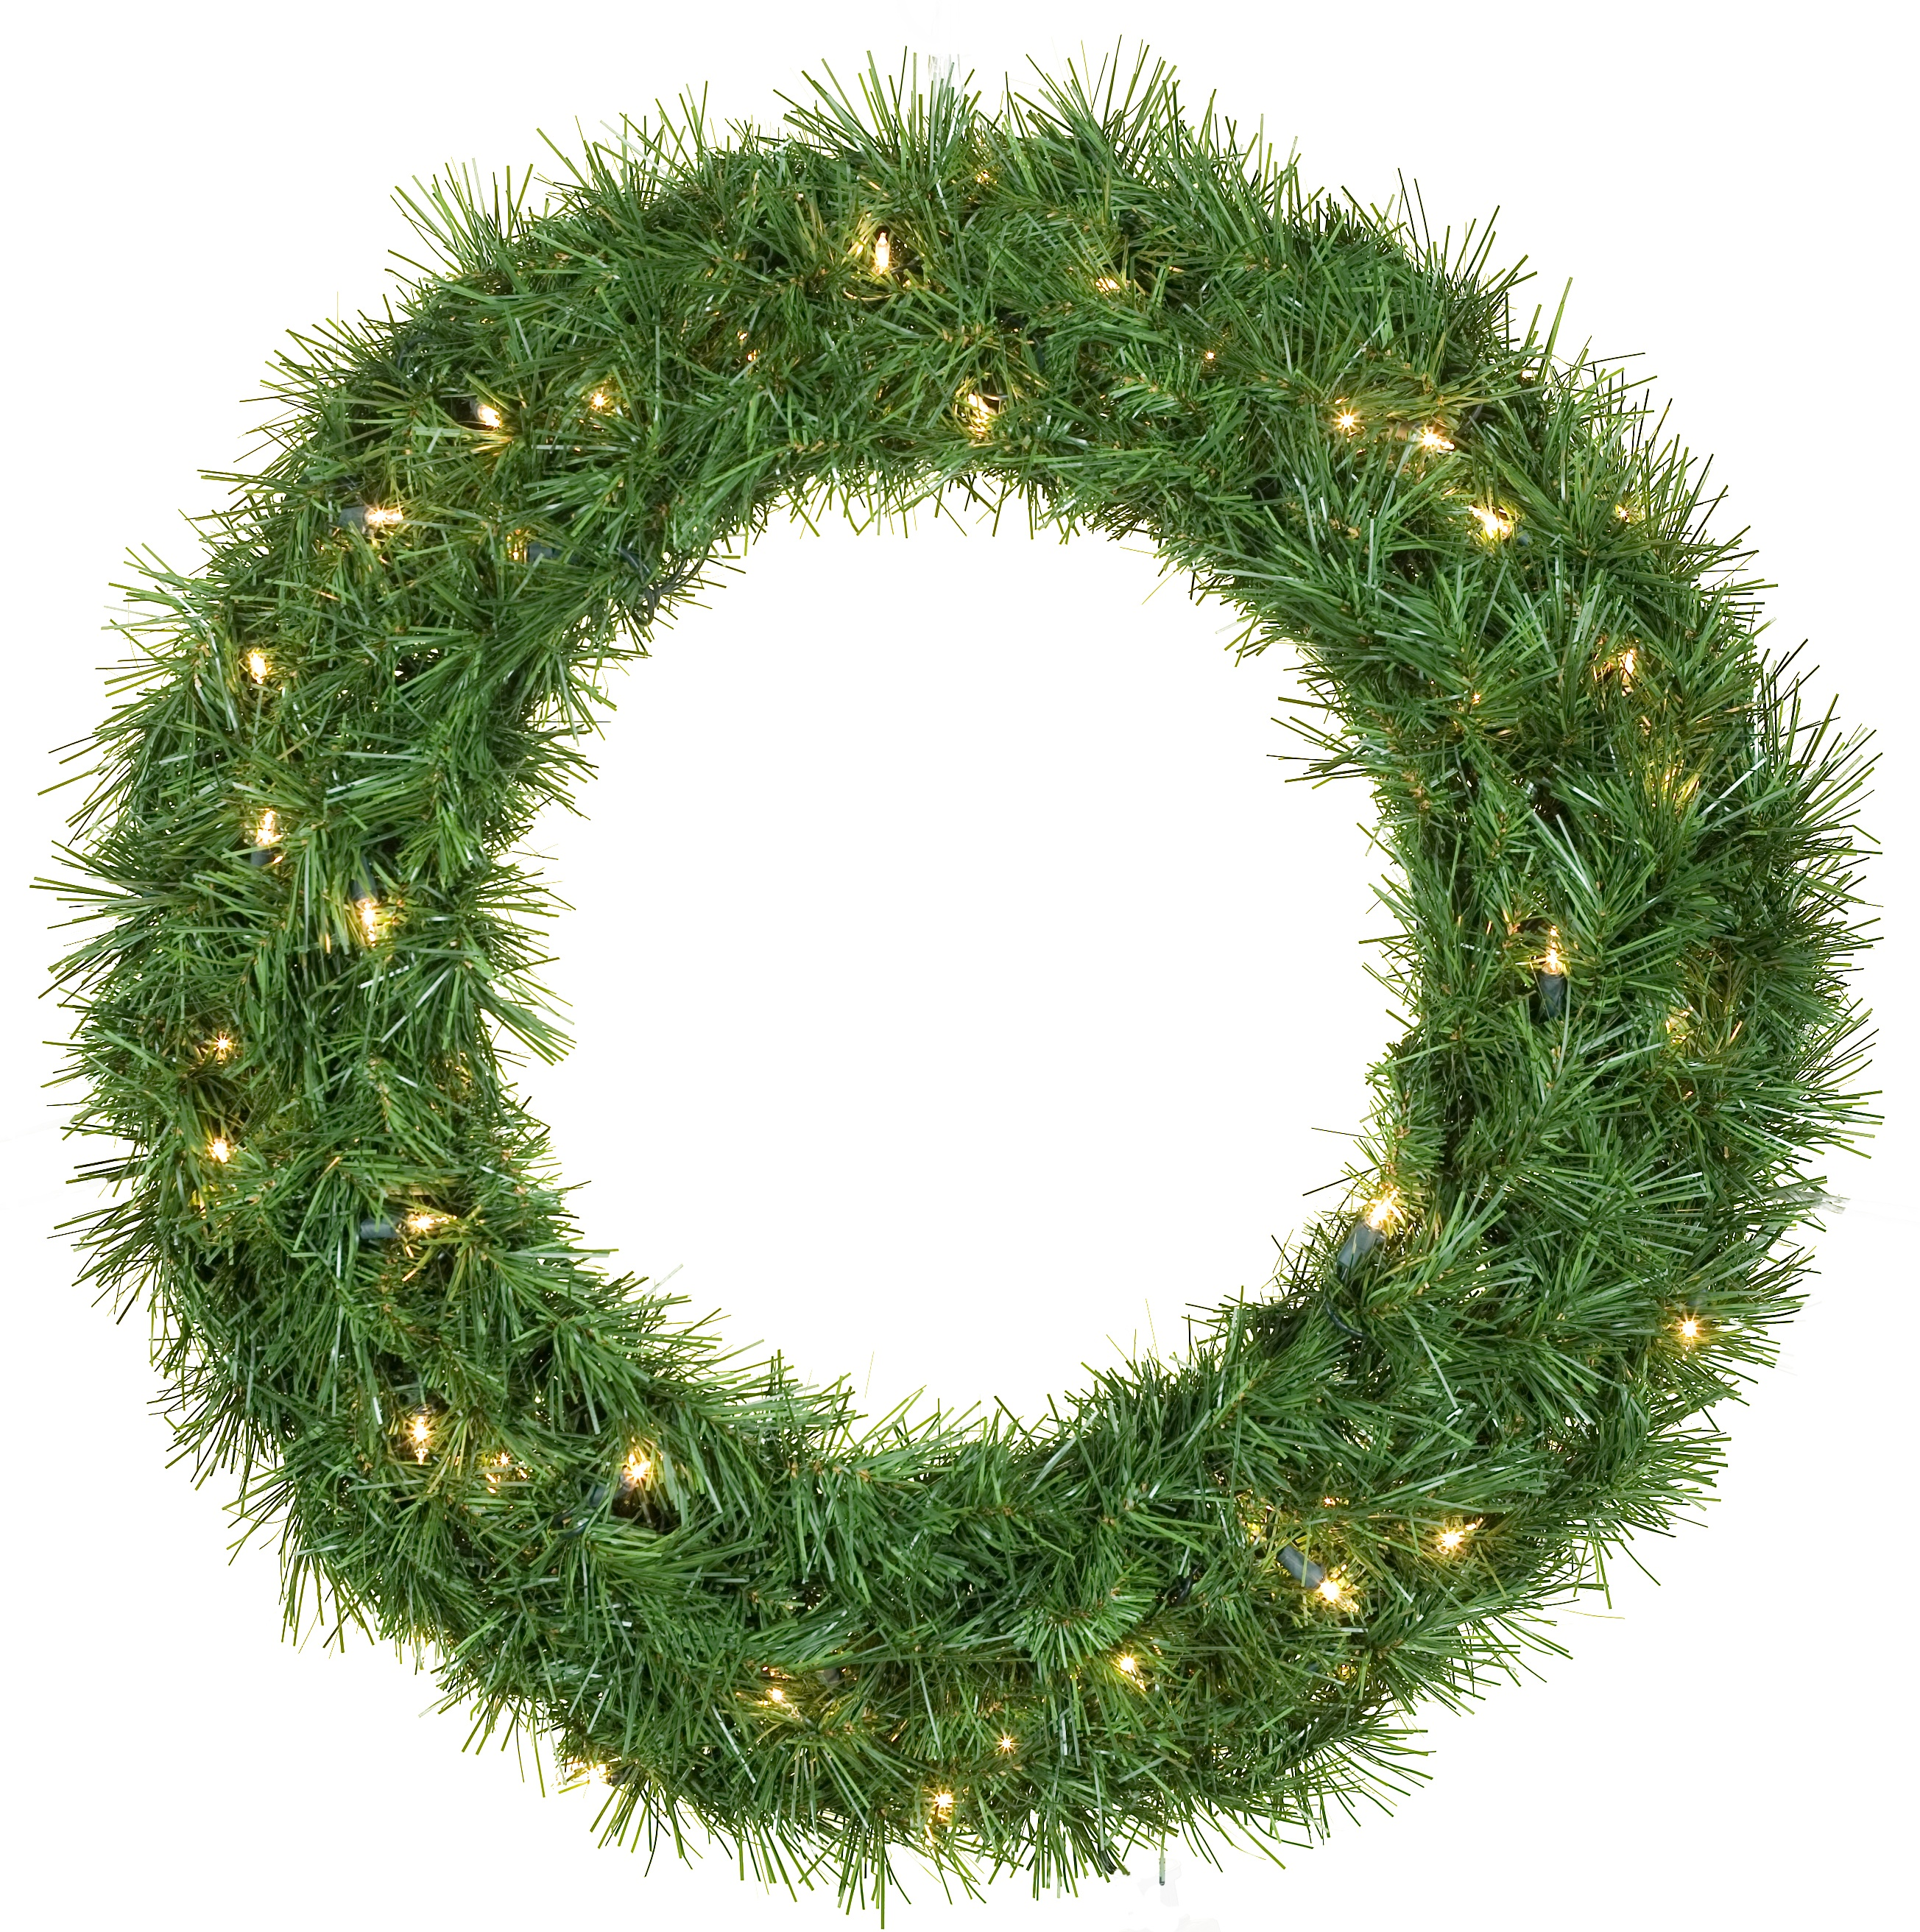 Dunhill Fir Christmas Wreath